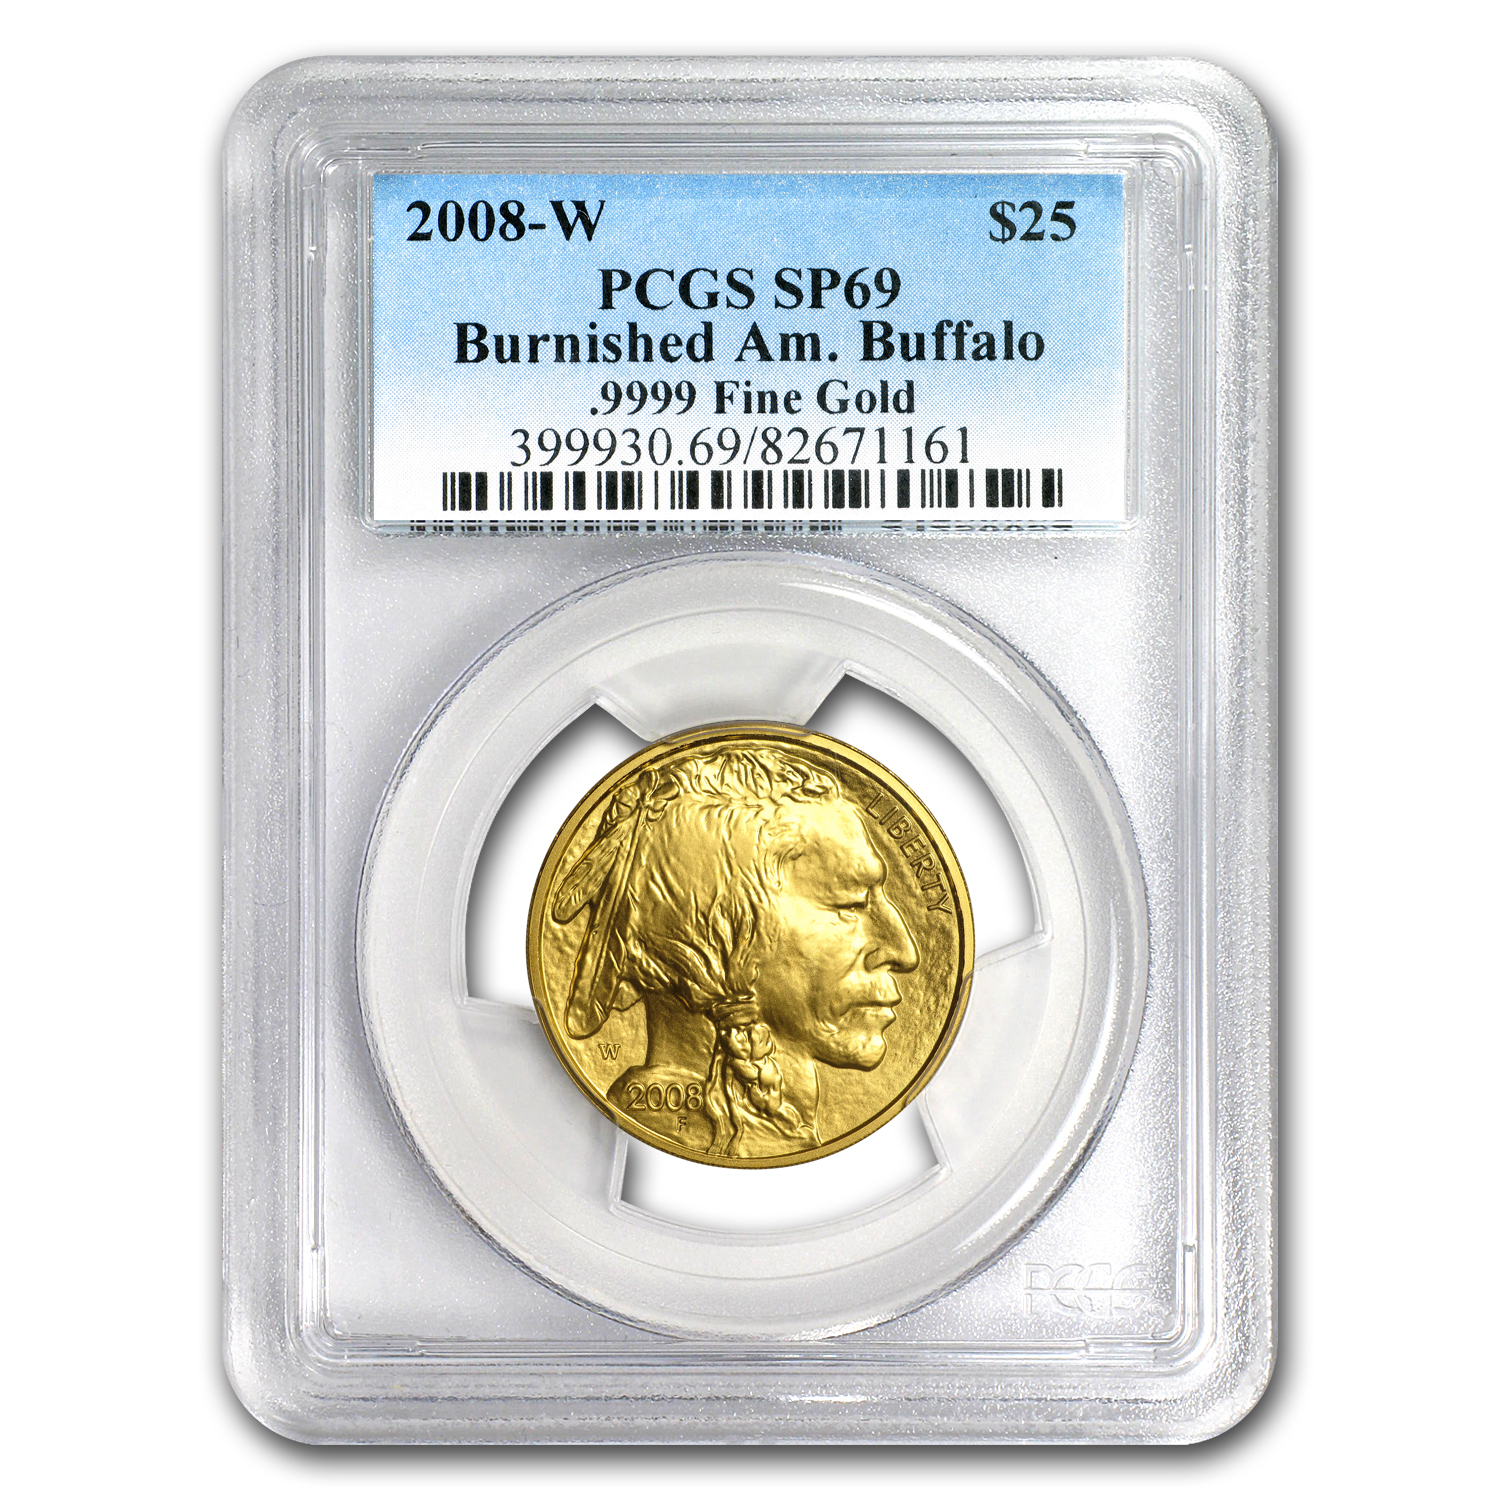 2008-W 1/2 oz Gold Buffalo MS-69 PCGS